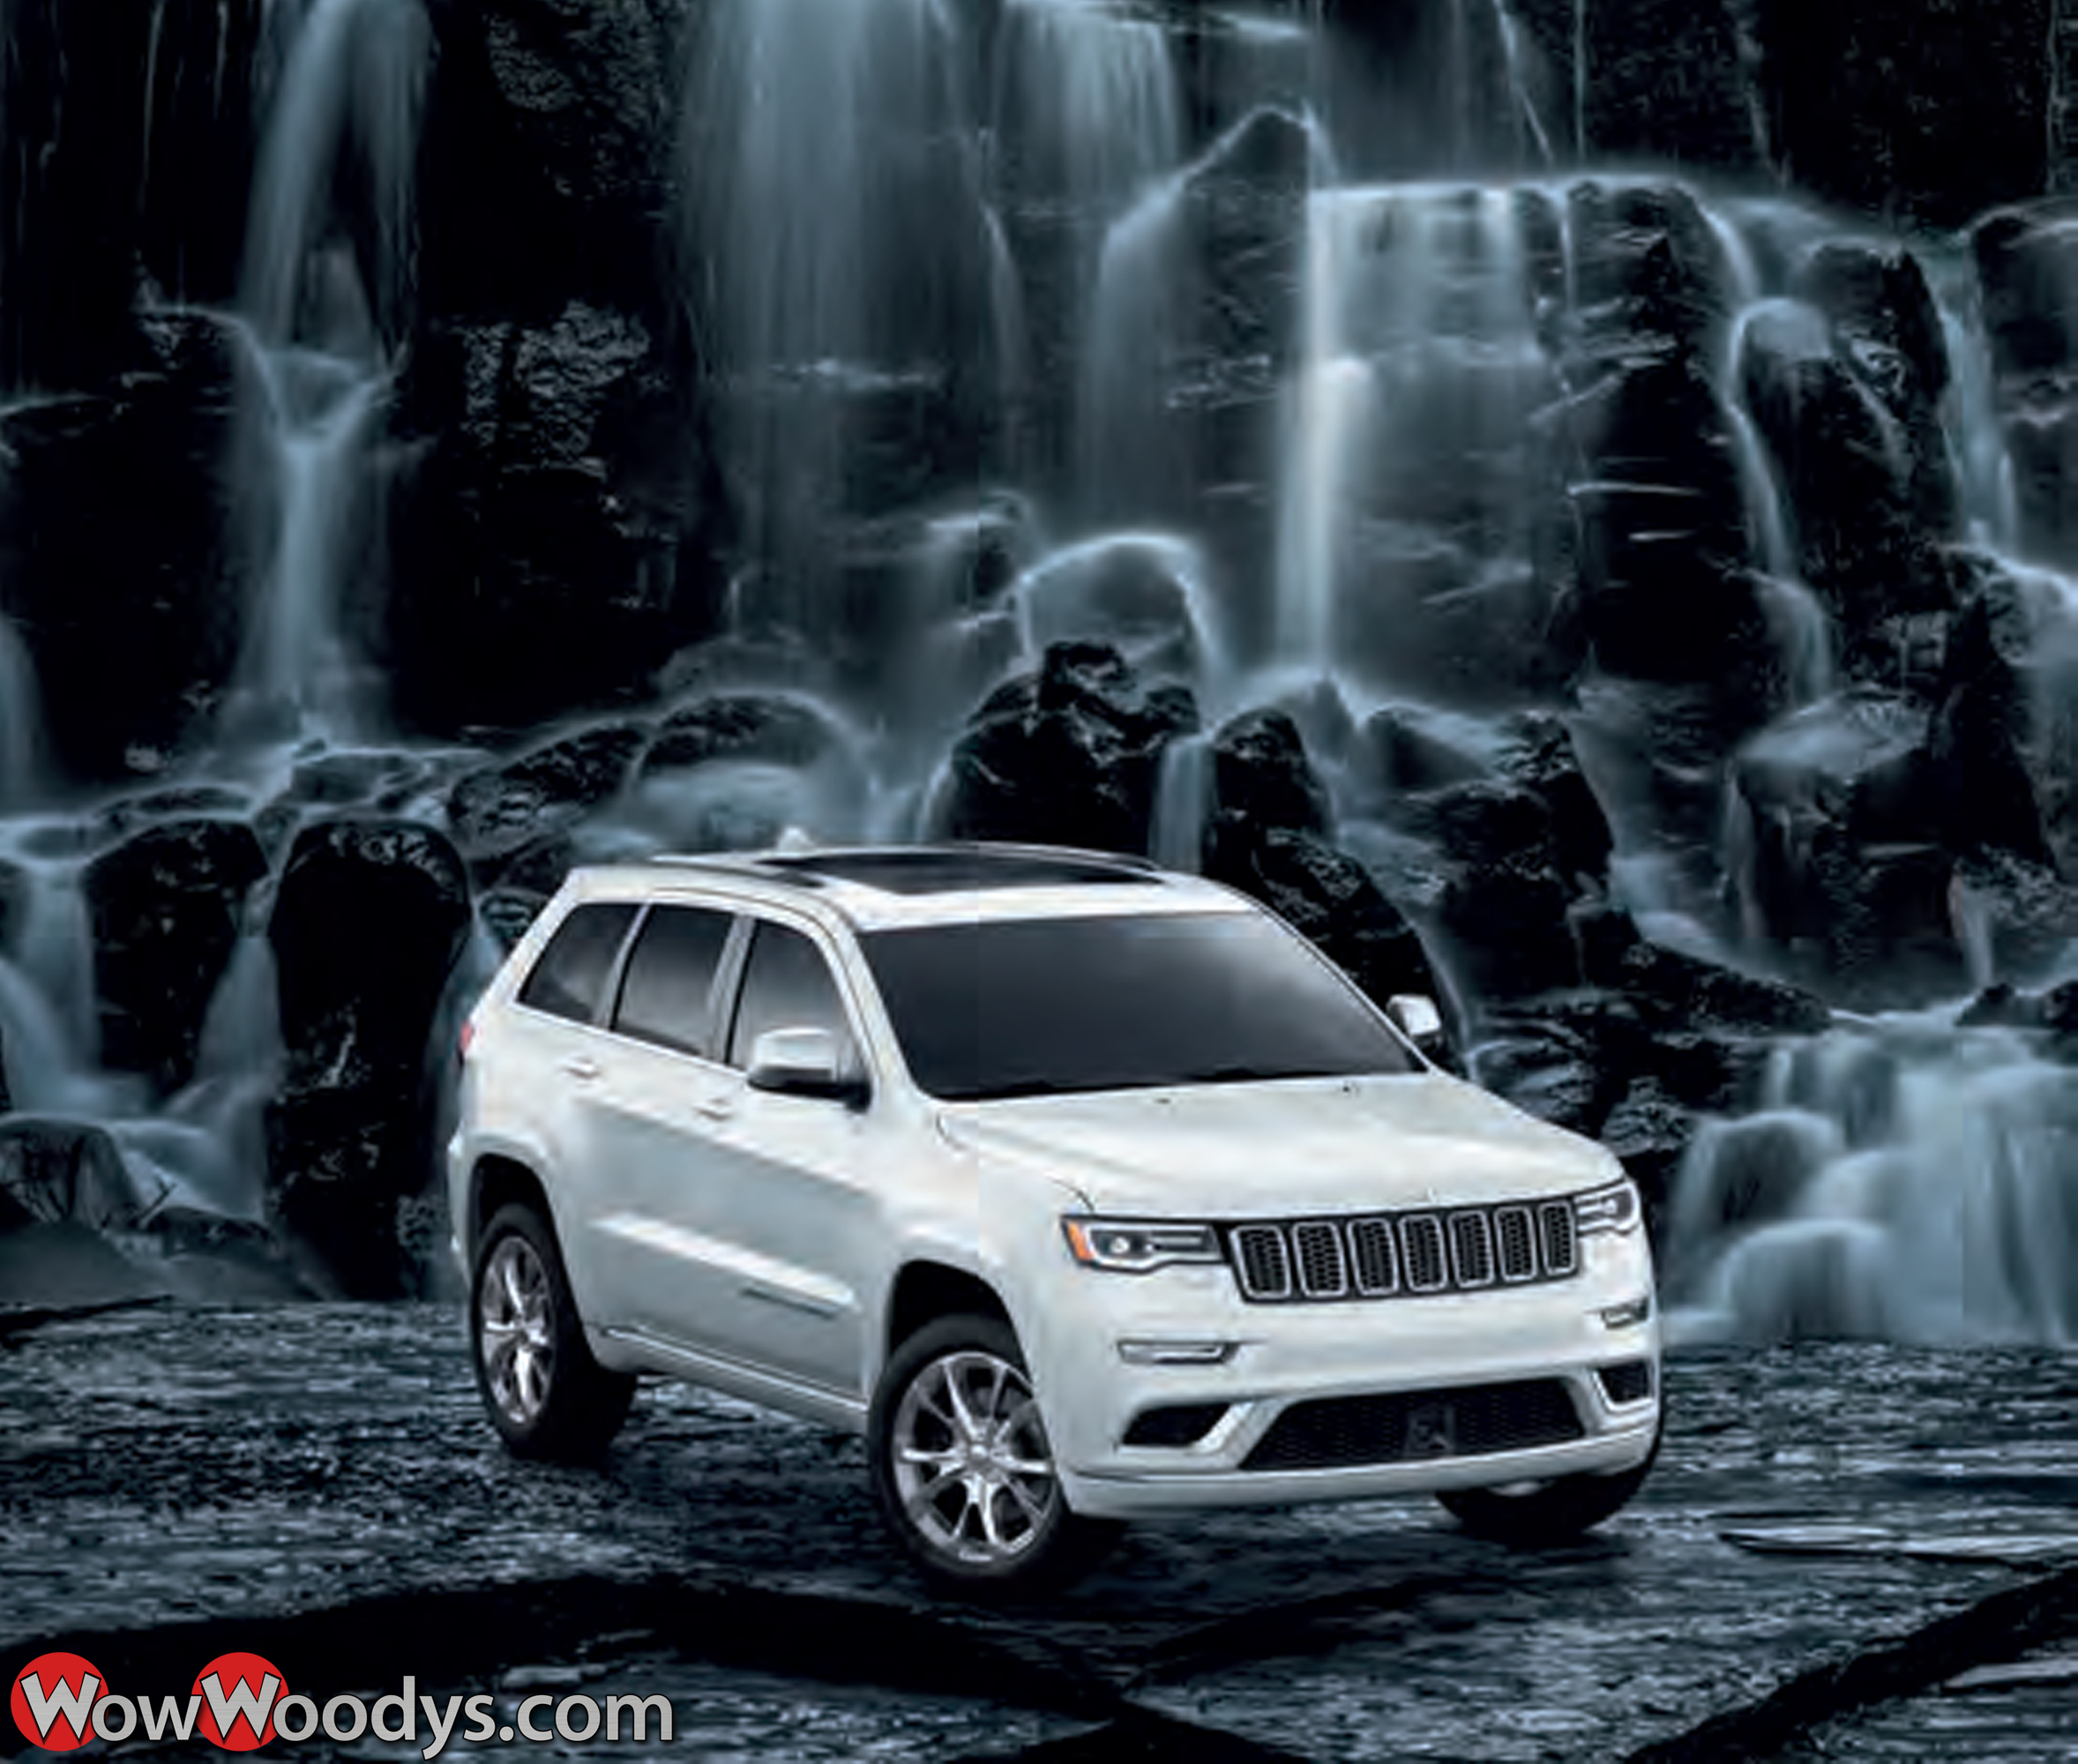 New 2019 Jeep Grand Cherokee Trims In Chilicothe, Near